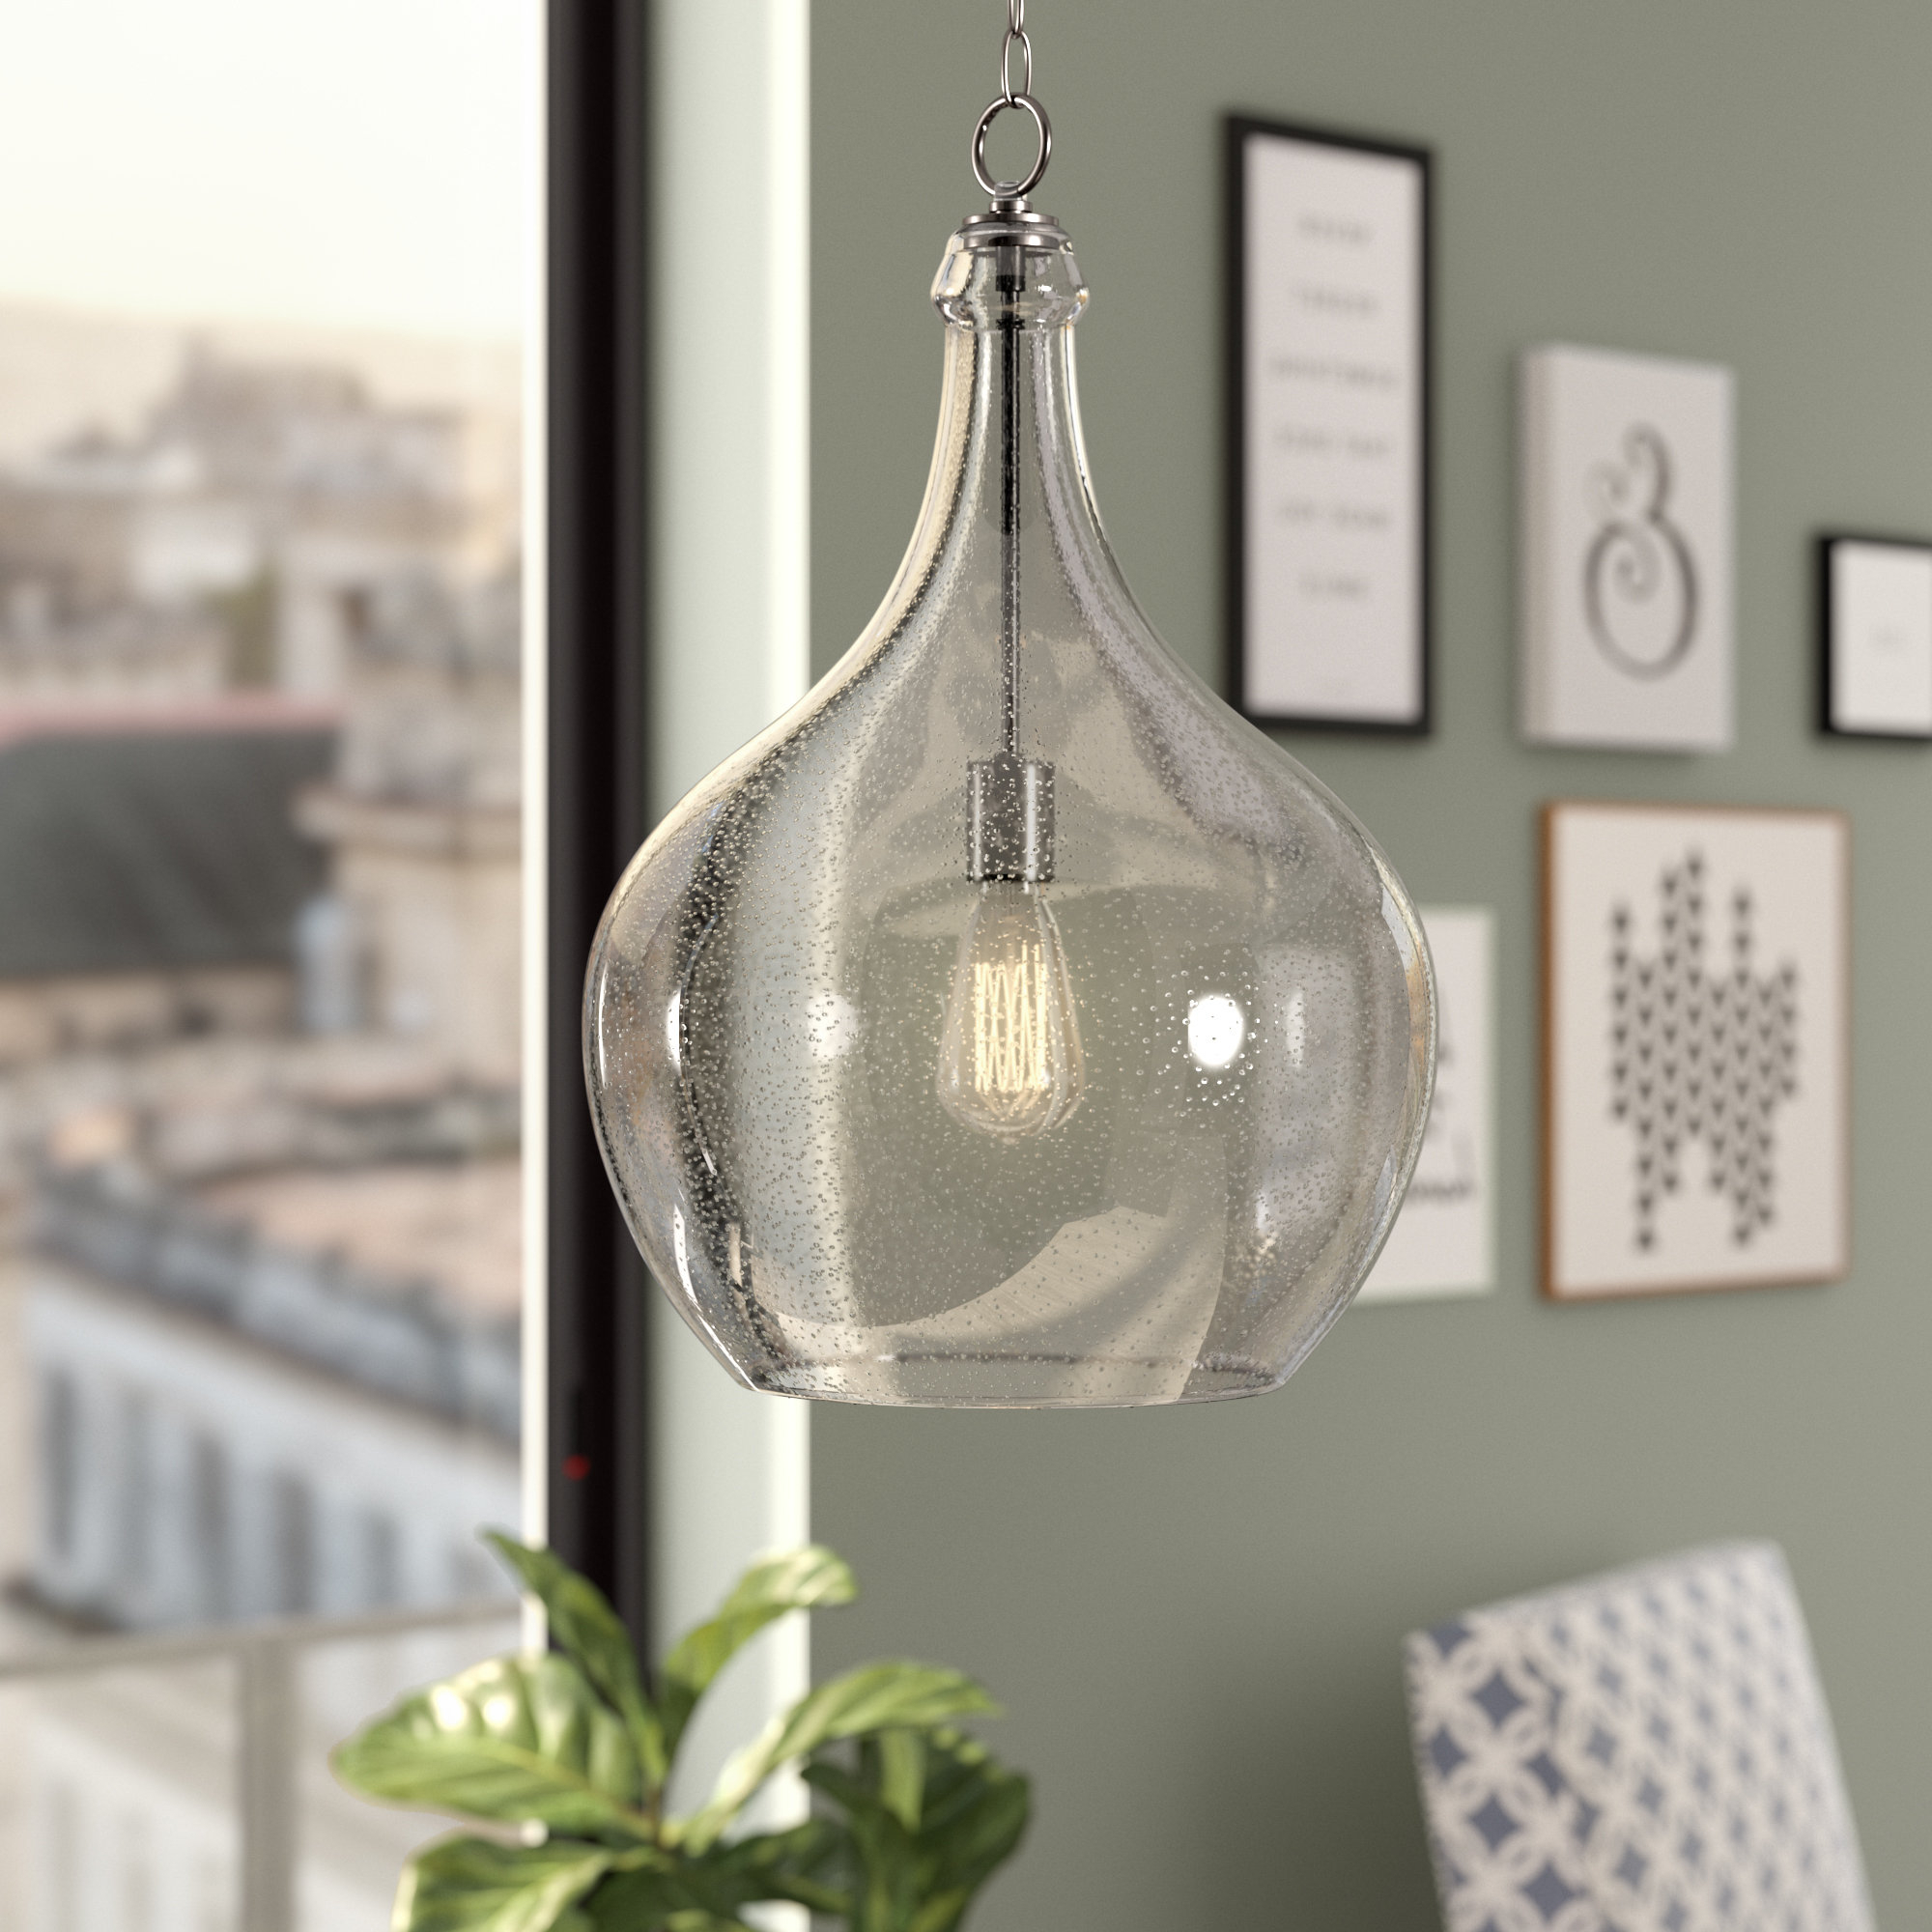 Oldbury 1 Light Single Cylinder Pendants For Most Up To Date Bustillos 1 Light Single Globe Pendant (View 21 of 25)